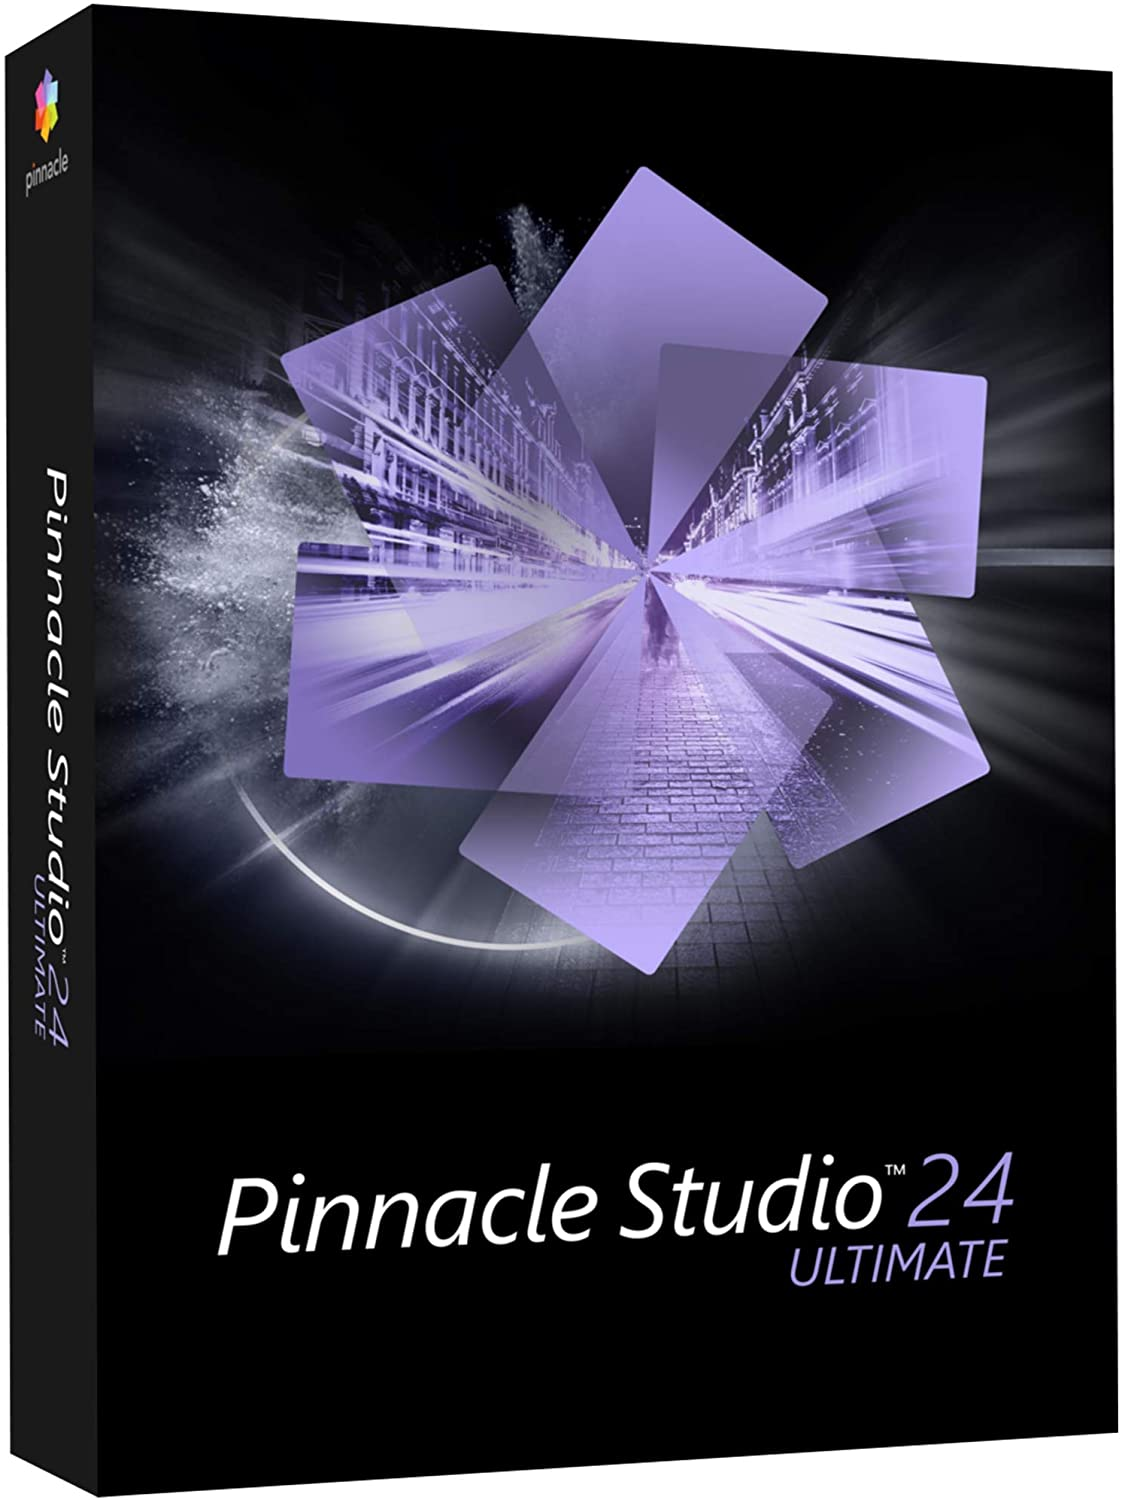 Pinnacle Studio 24 Ultimate | Advanced Video Editing and Screen Recording Software [PC Disc]